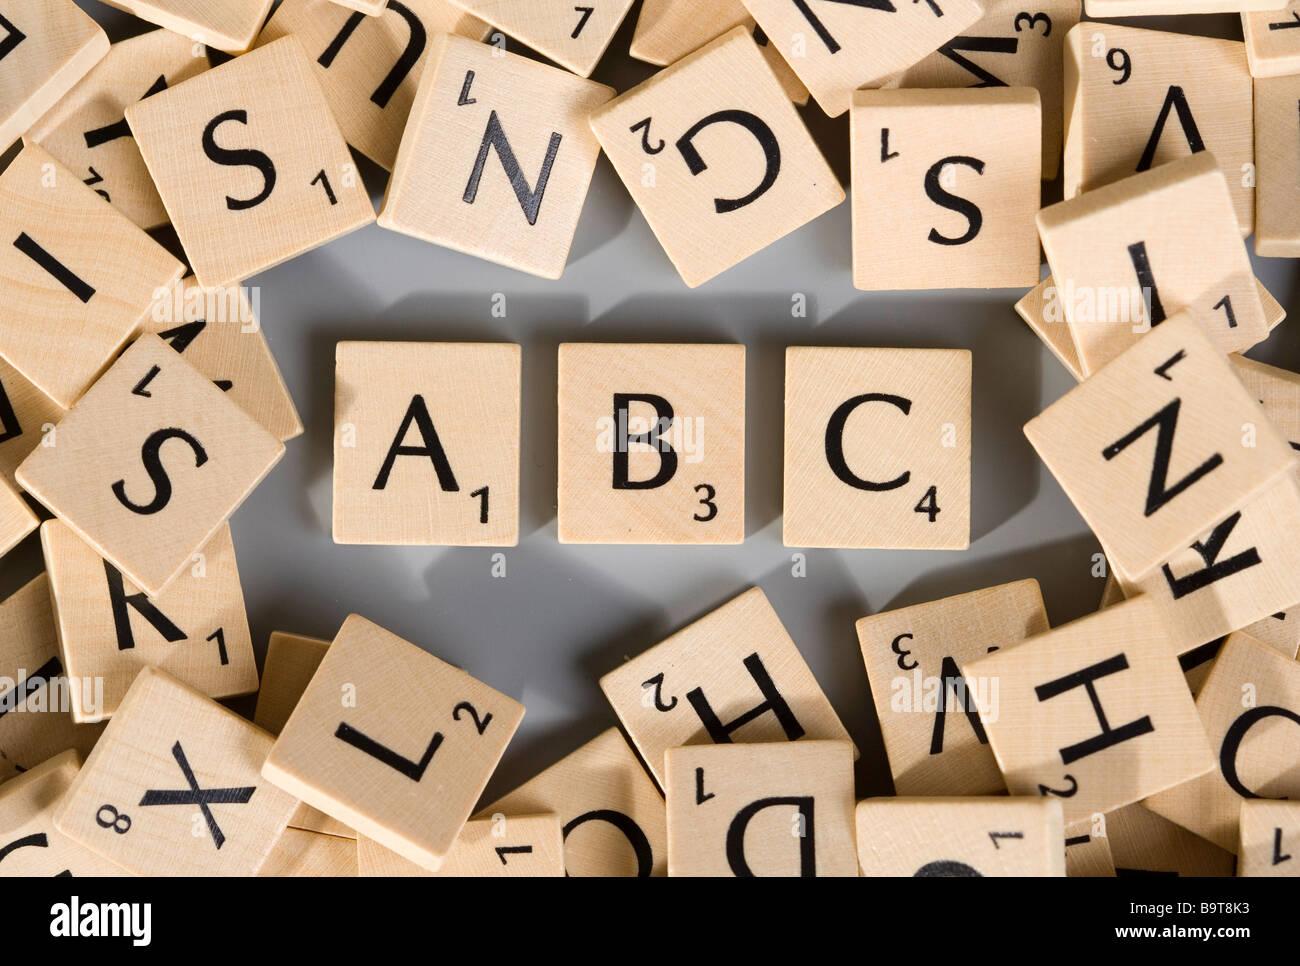 Abc stockfotos abc bilder alamy for Mobel 9 buchstaben